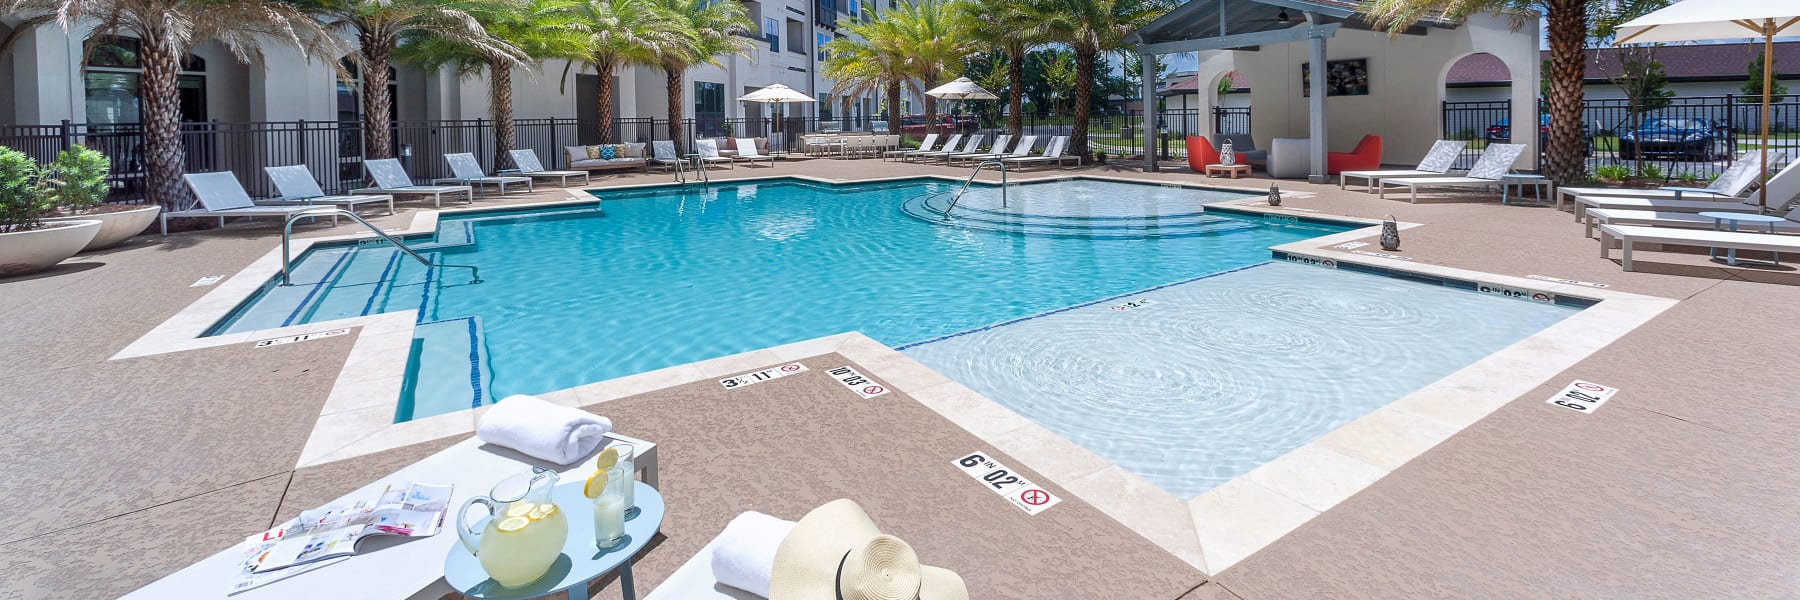 Pet friendly at The Addison in Baton Rouge, Louisiana